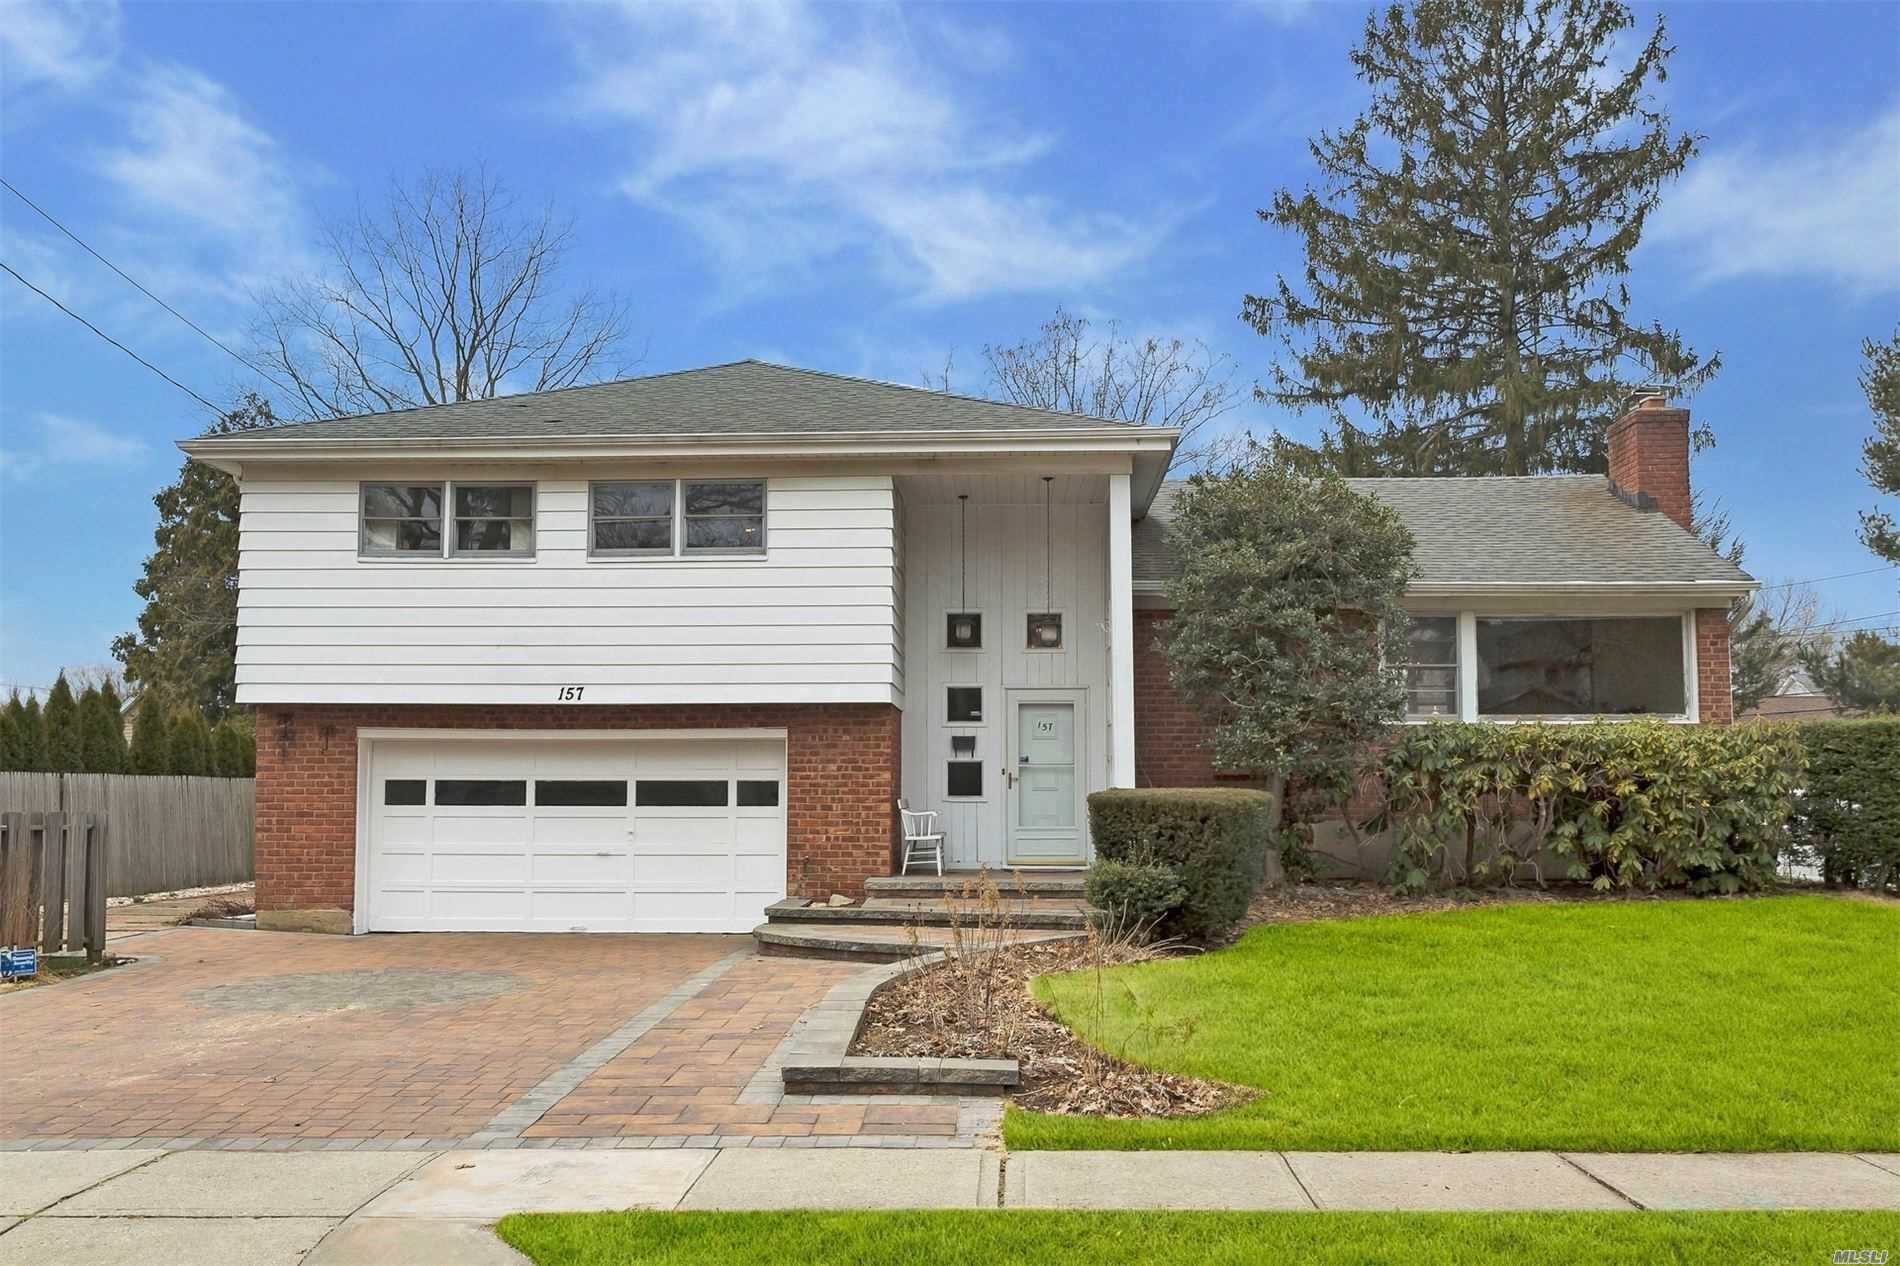 157 Cold Spring Road, Syosset, NY 11791 - MLS#: 3206670